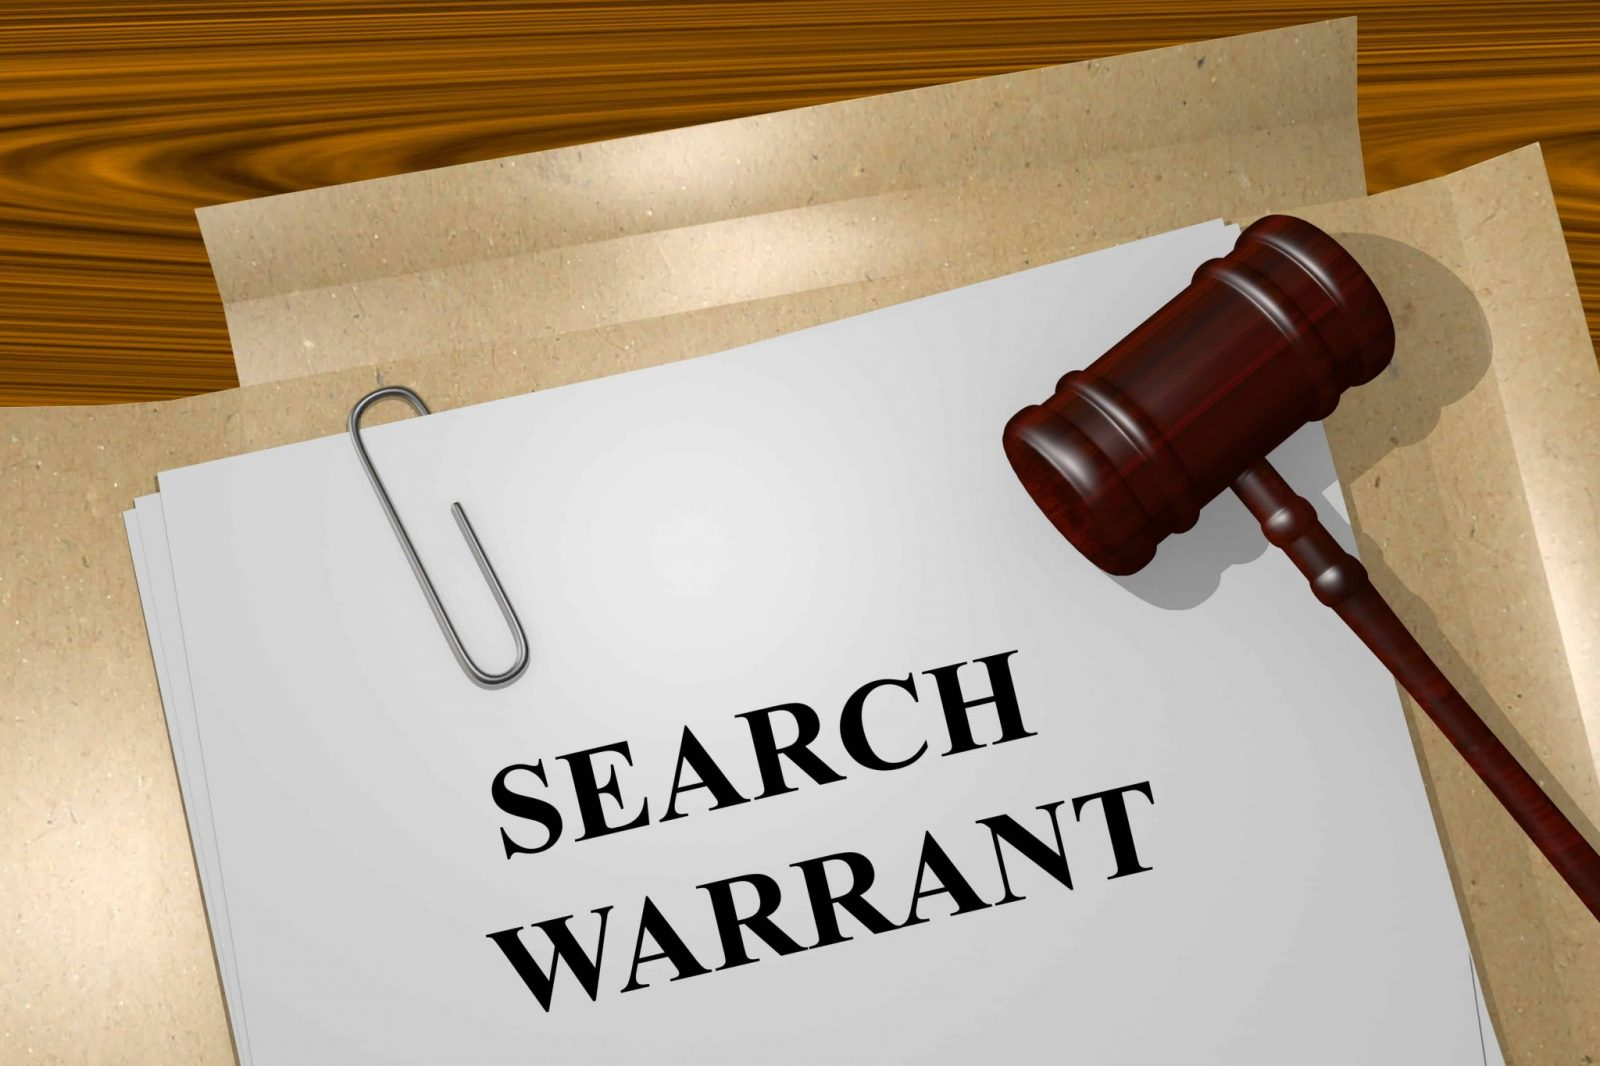 Search warrant Texas